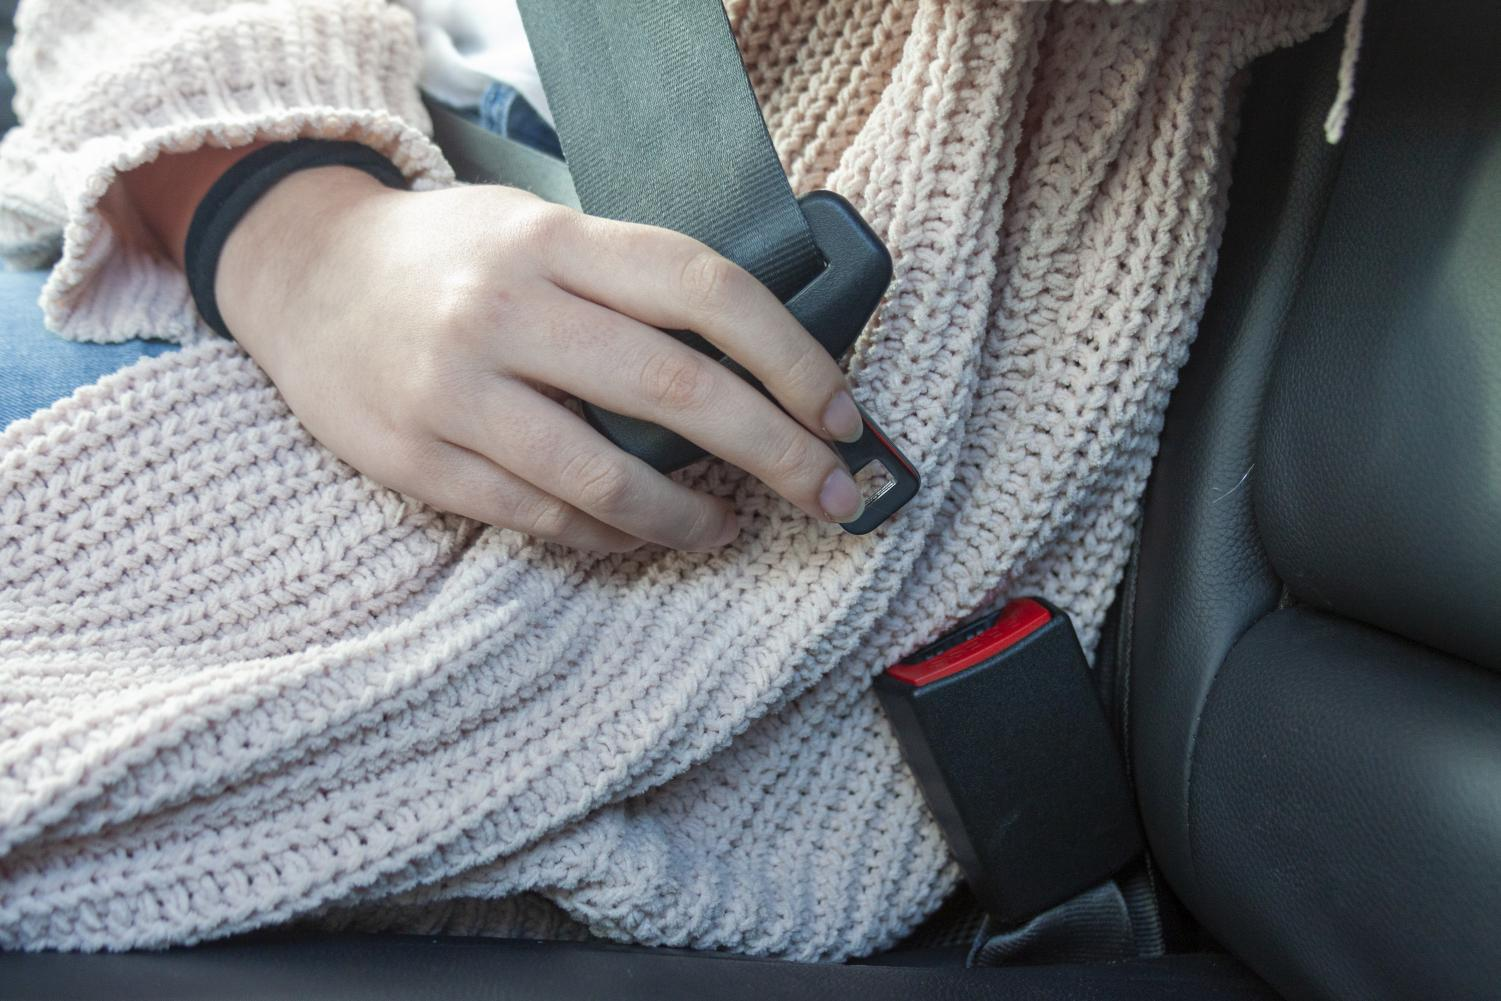 The importance in wearing a seat belt is overlooked by many.